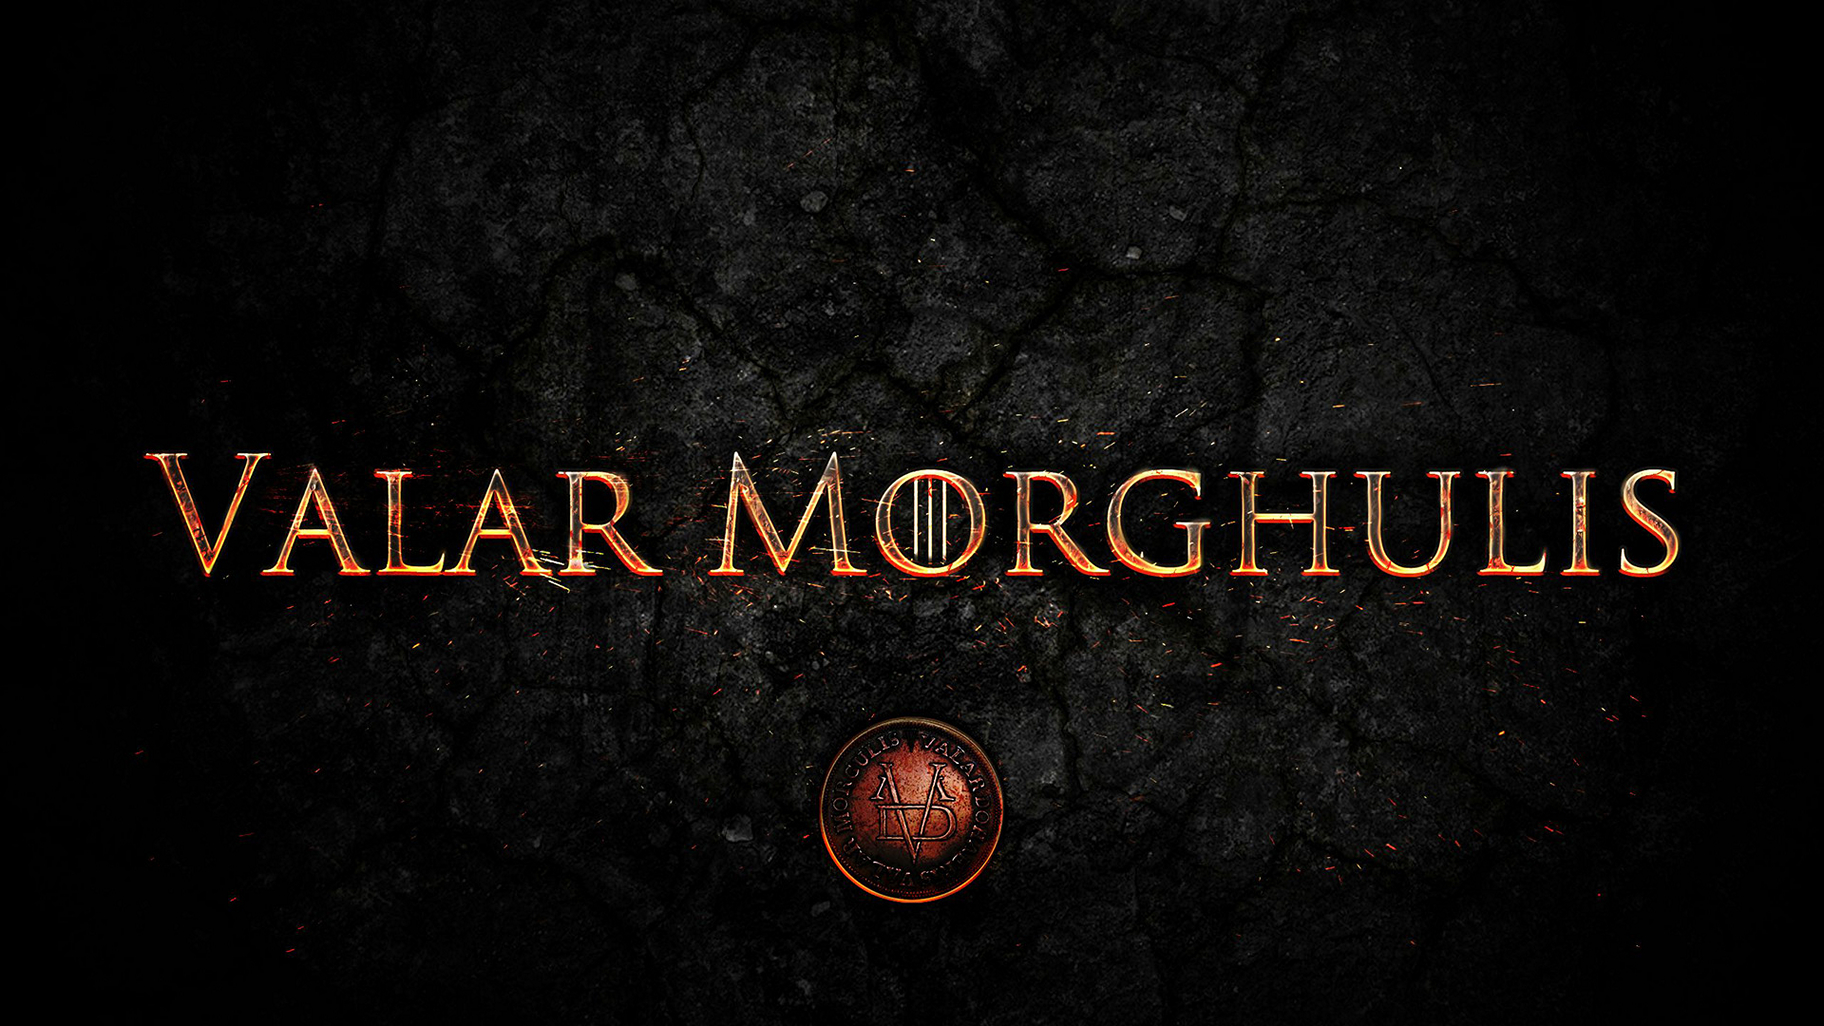 download-game-of-thrones-hd-1920x1080-wallpaper-wp3404855